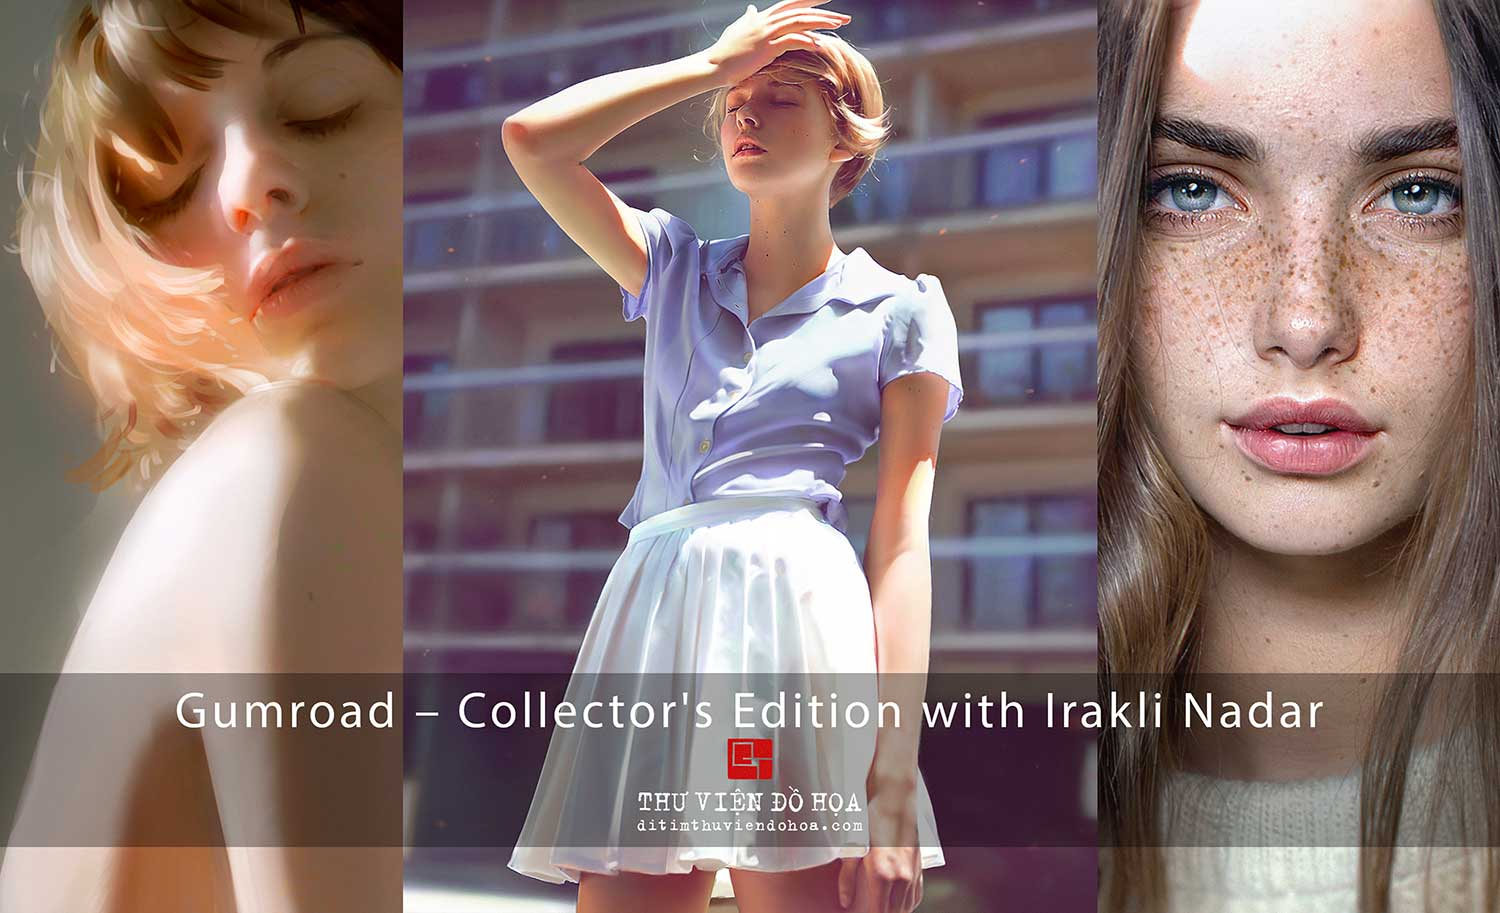 [ Tutorials ] Gumroad – Collector's Edition with Irakli Nadar | Vẽ bằng Photoshop